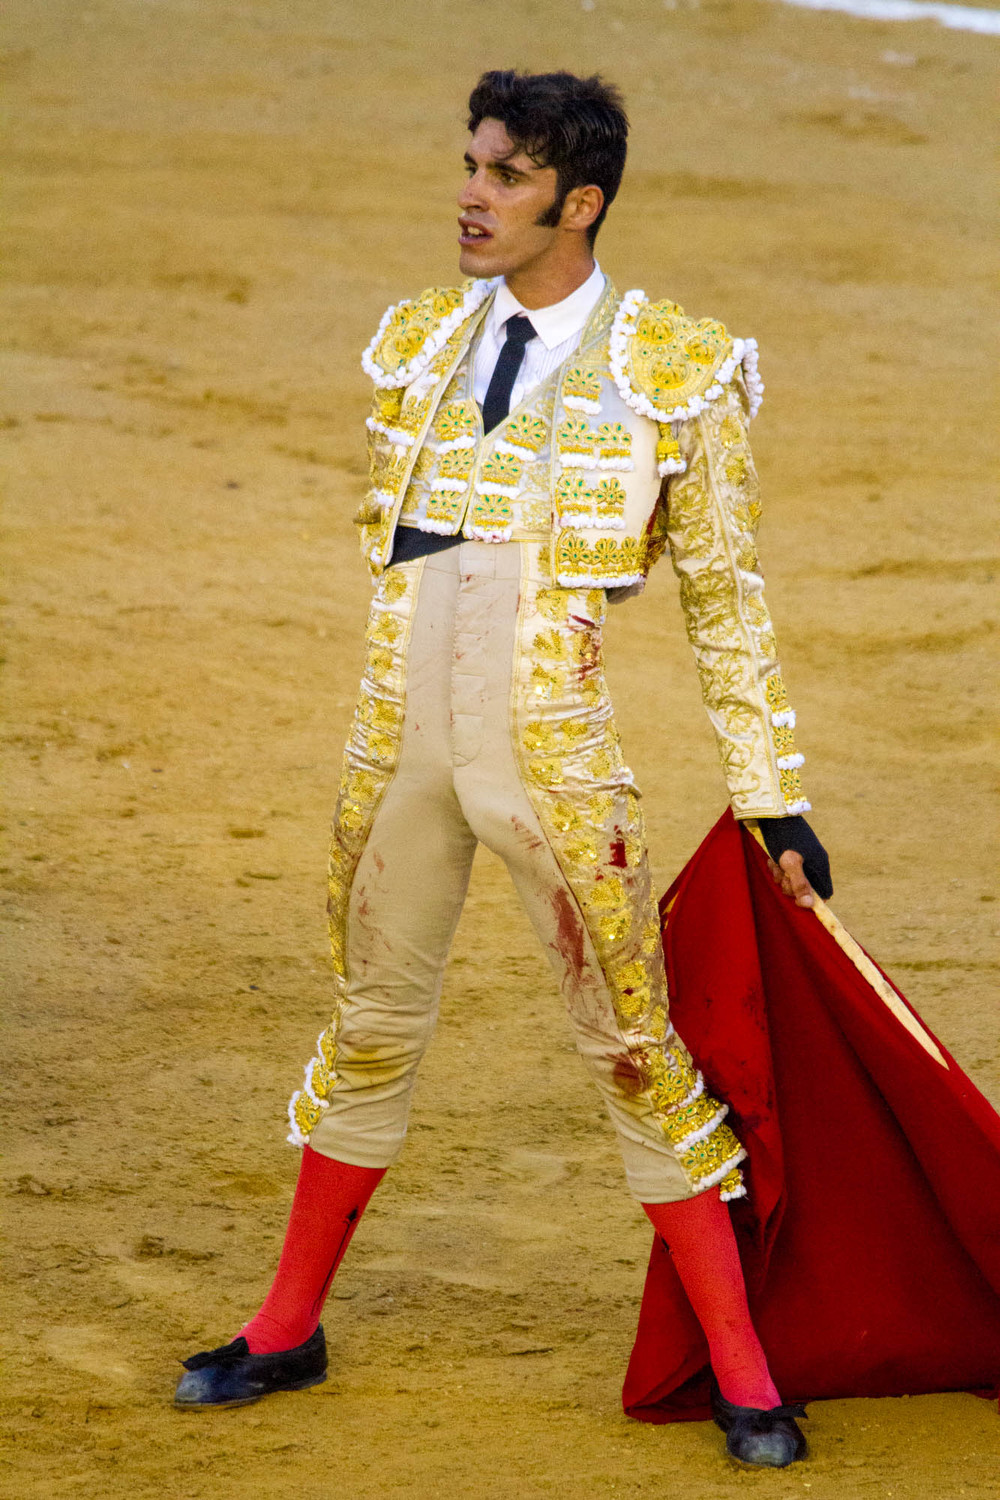 This was the best Matador of the night. Stunning the crowd.